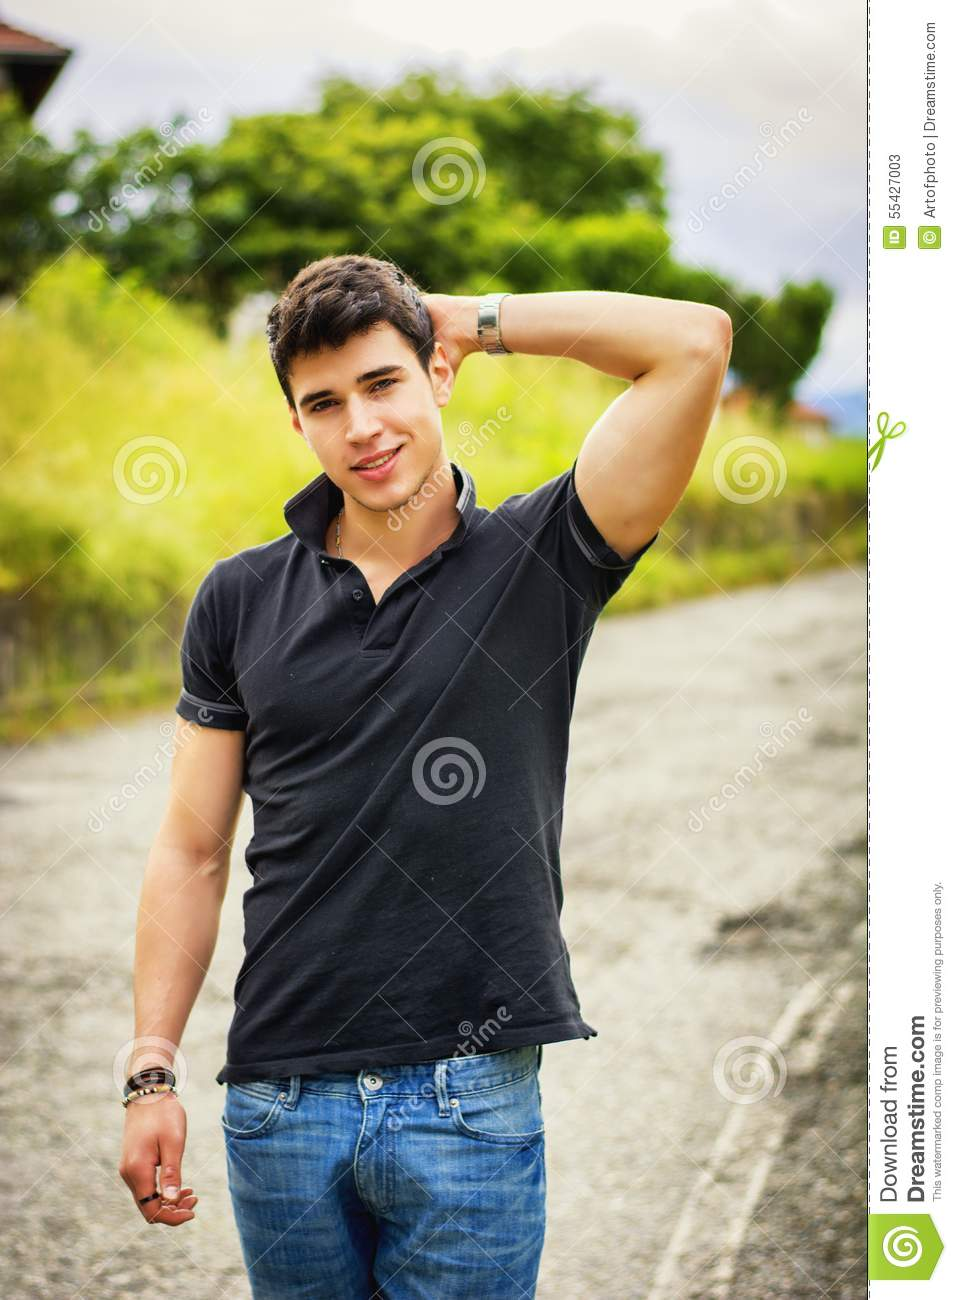 Black t shirt and jeans - Young Man In Jeans And Black T Shirt Walking Along